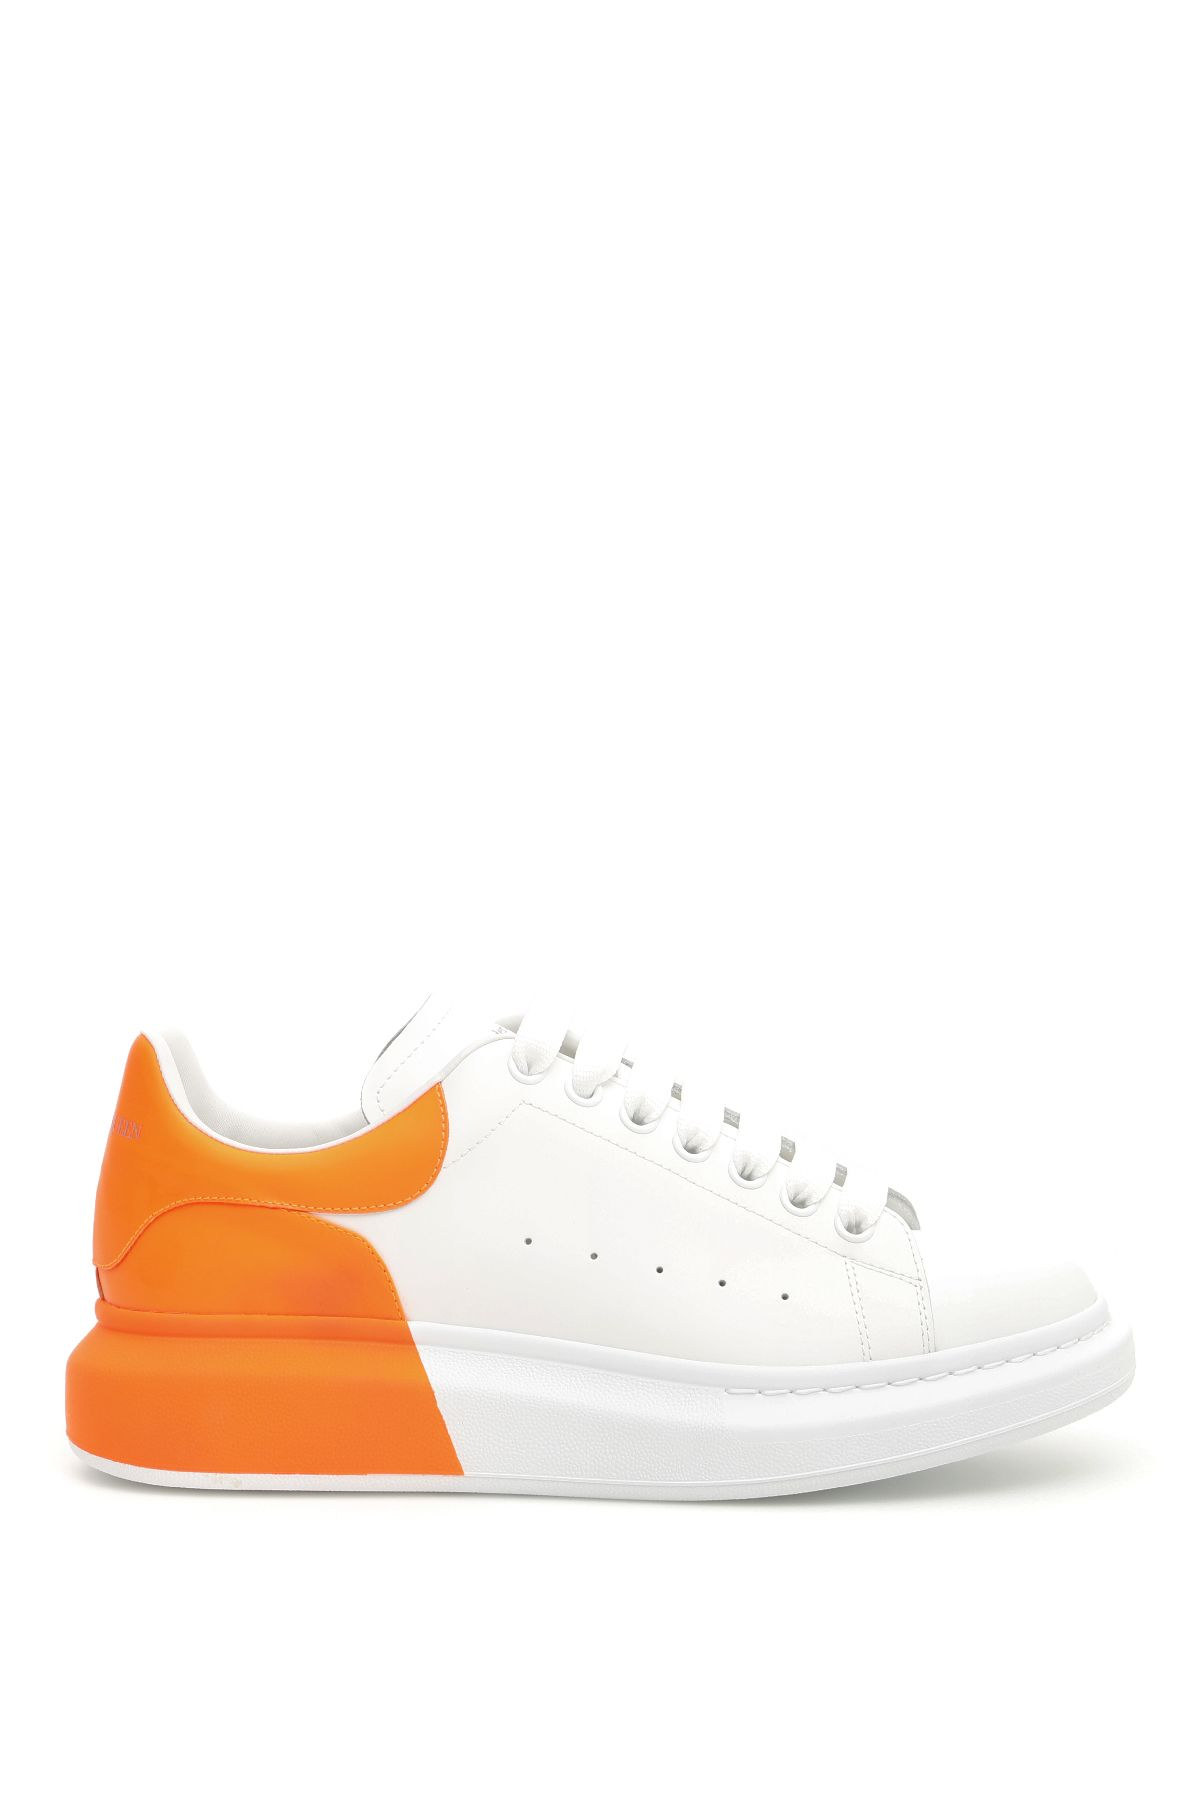 a629ce8a847 Alexander McQueen Fluo Oversize Sneakers - WHITE ORANGE SPACE (White) ...